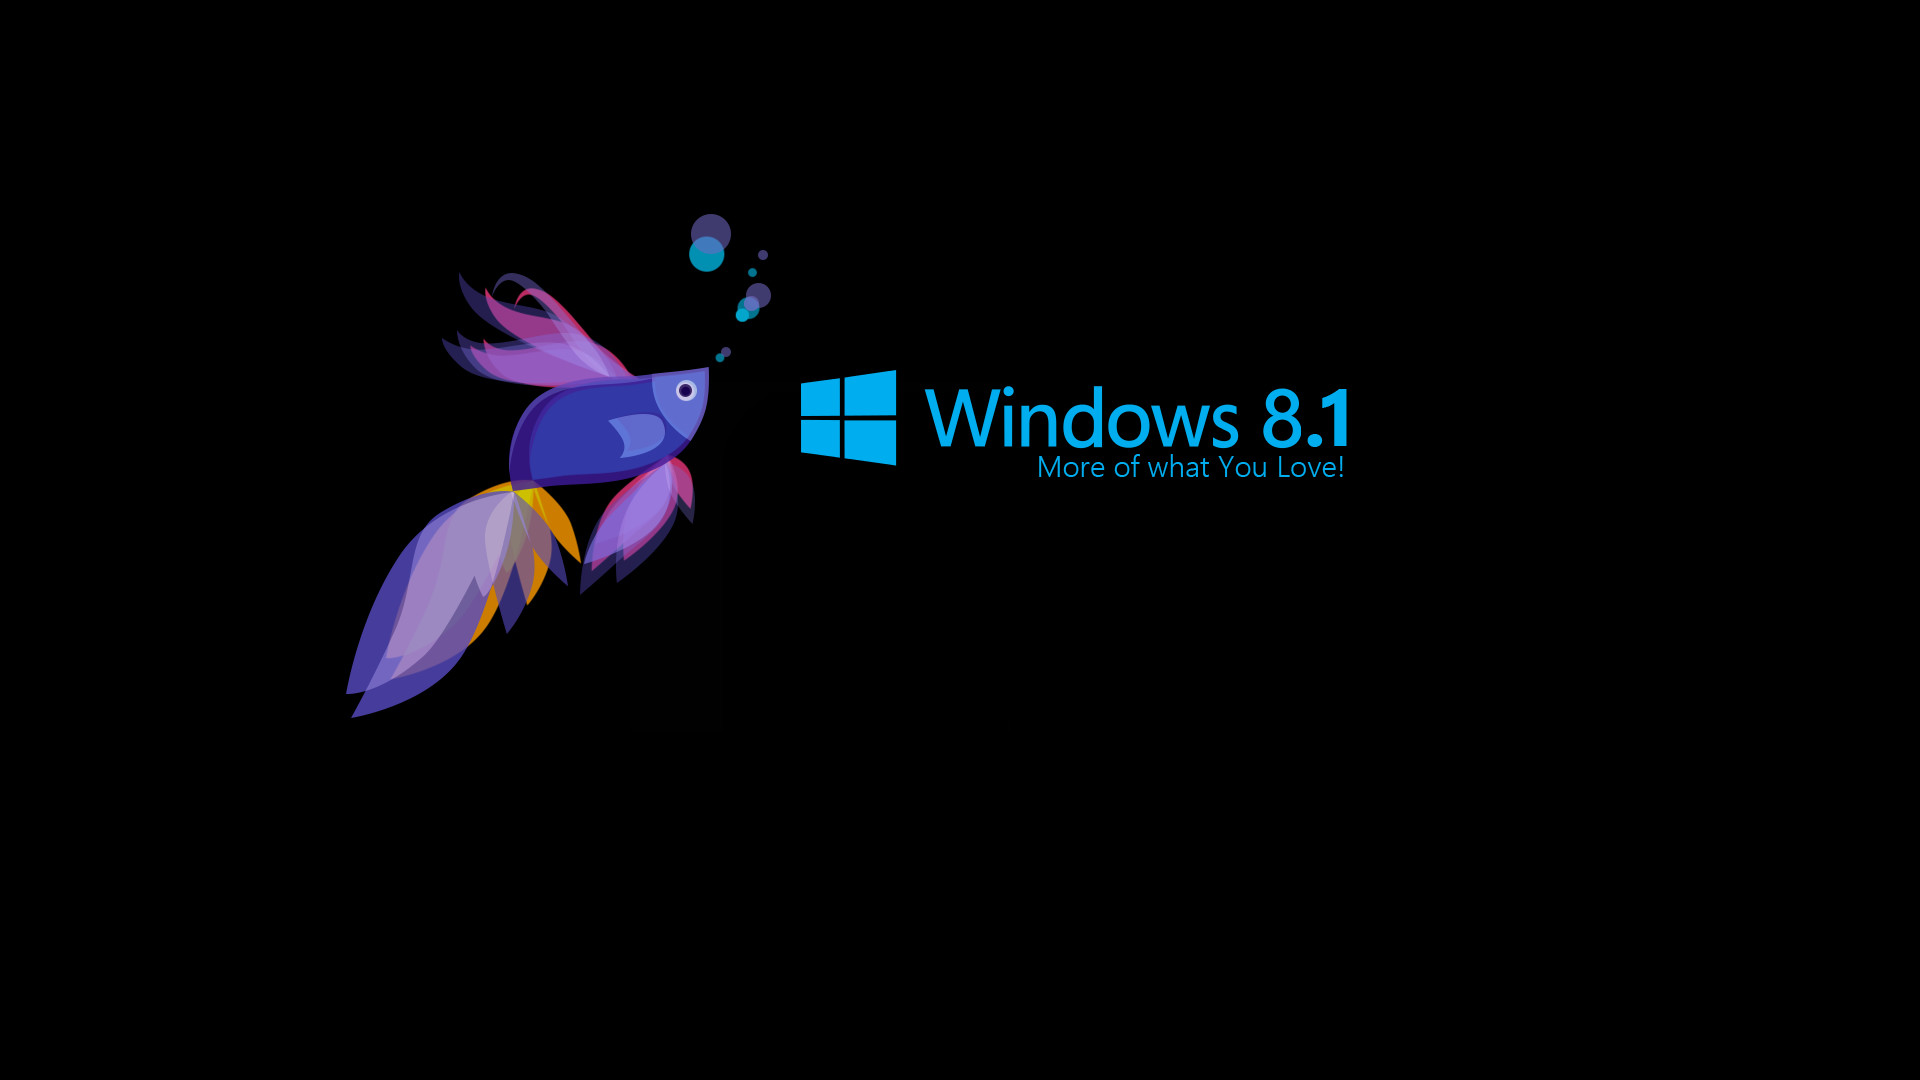 windows 81 wallpaper hd 1080p (53+ images)